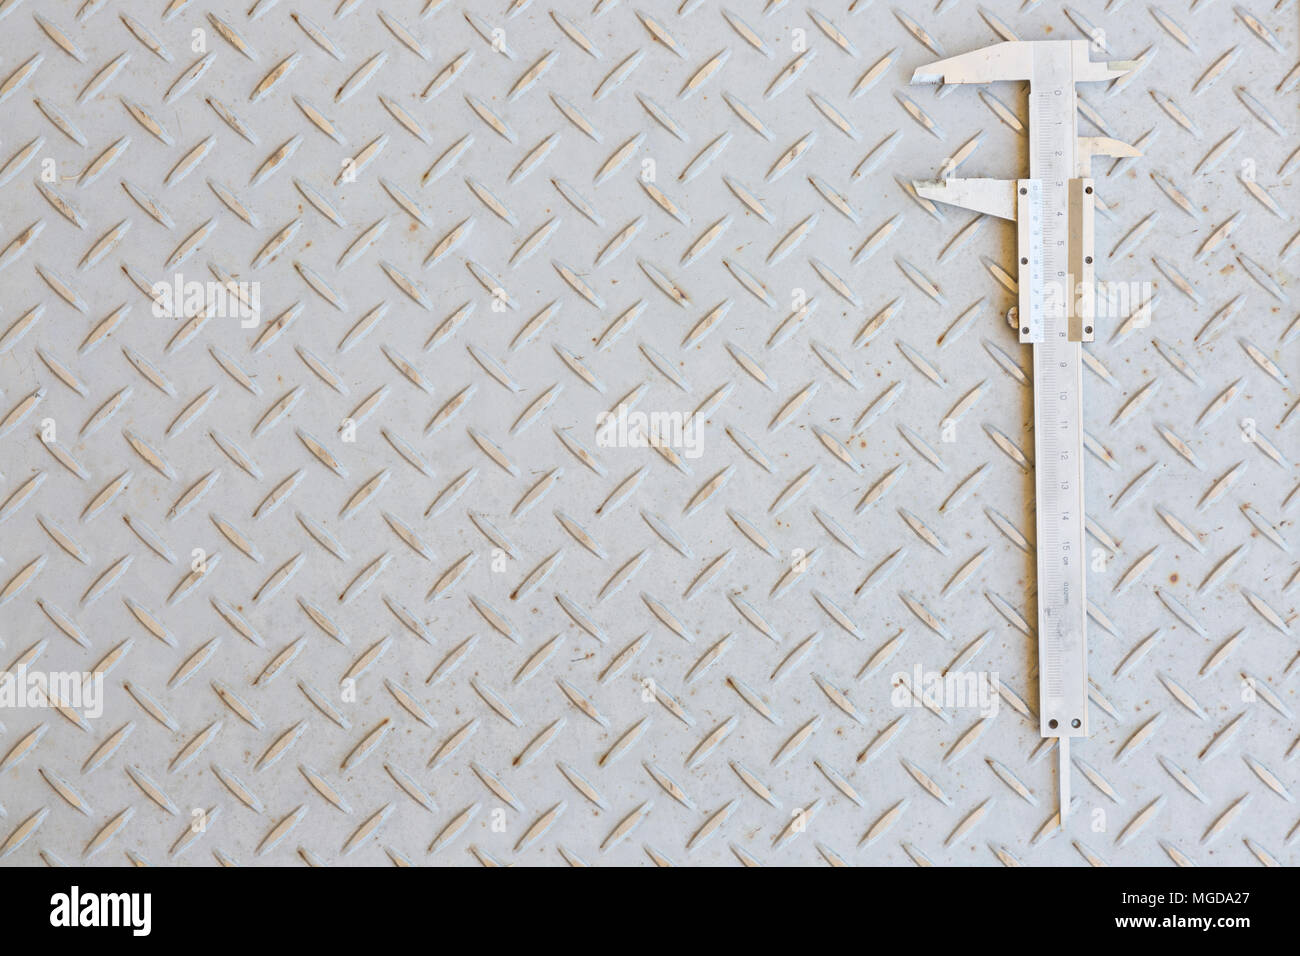 Vernier calipers on a checker plate background. - Stock Image